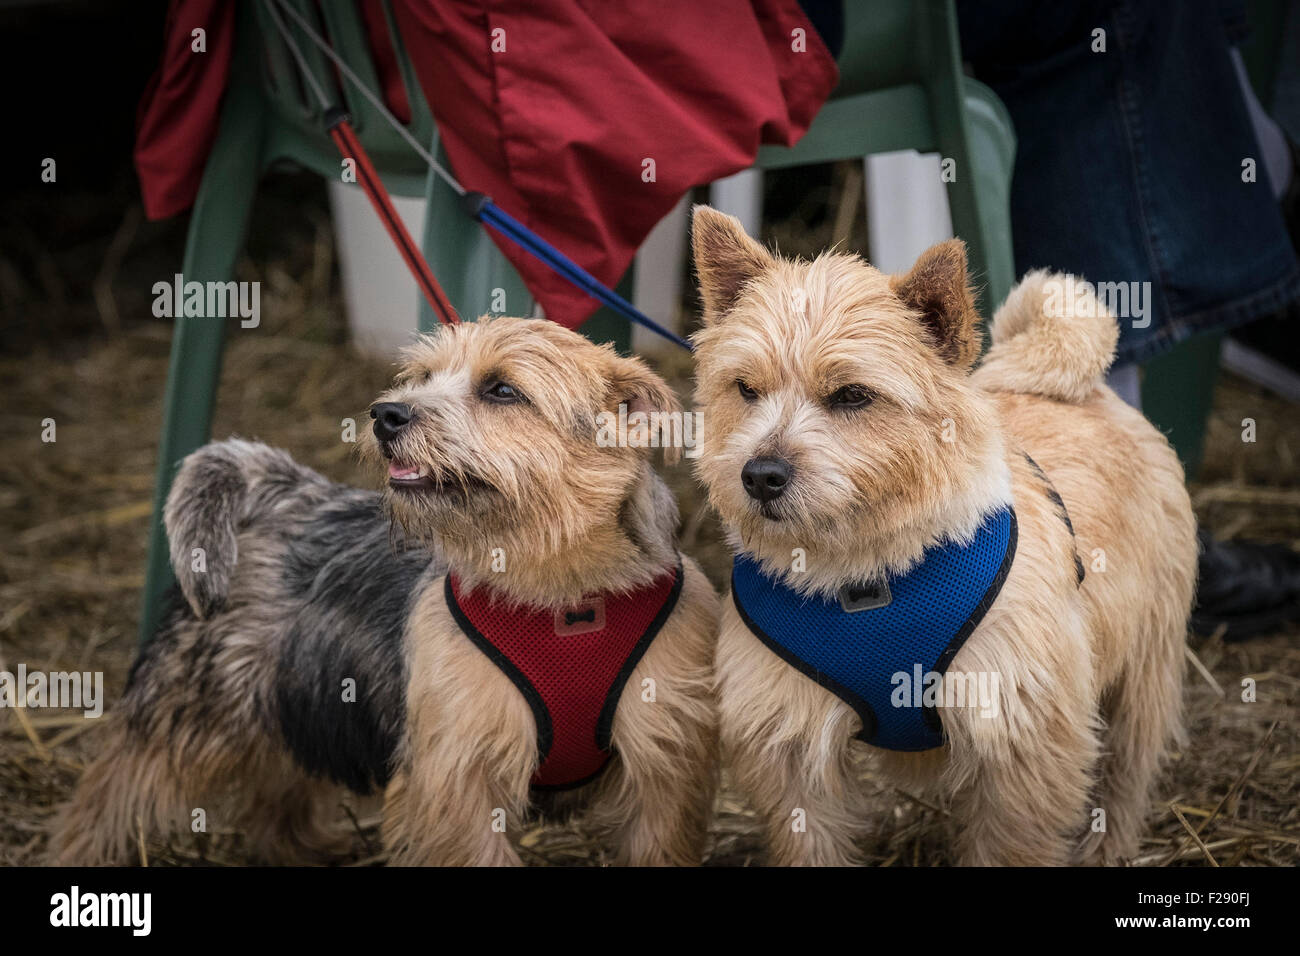 Buddy and Lucy, Norwich Terriers at the Essex Country Show, Barleylands, Essex. - Stock Image